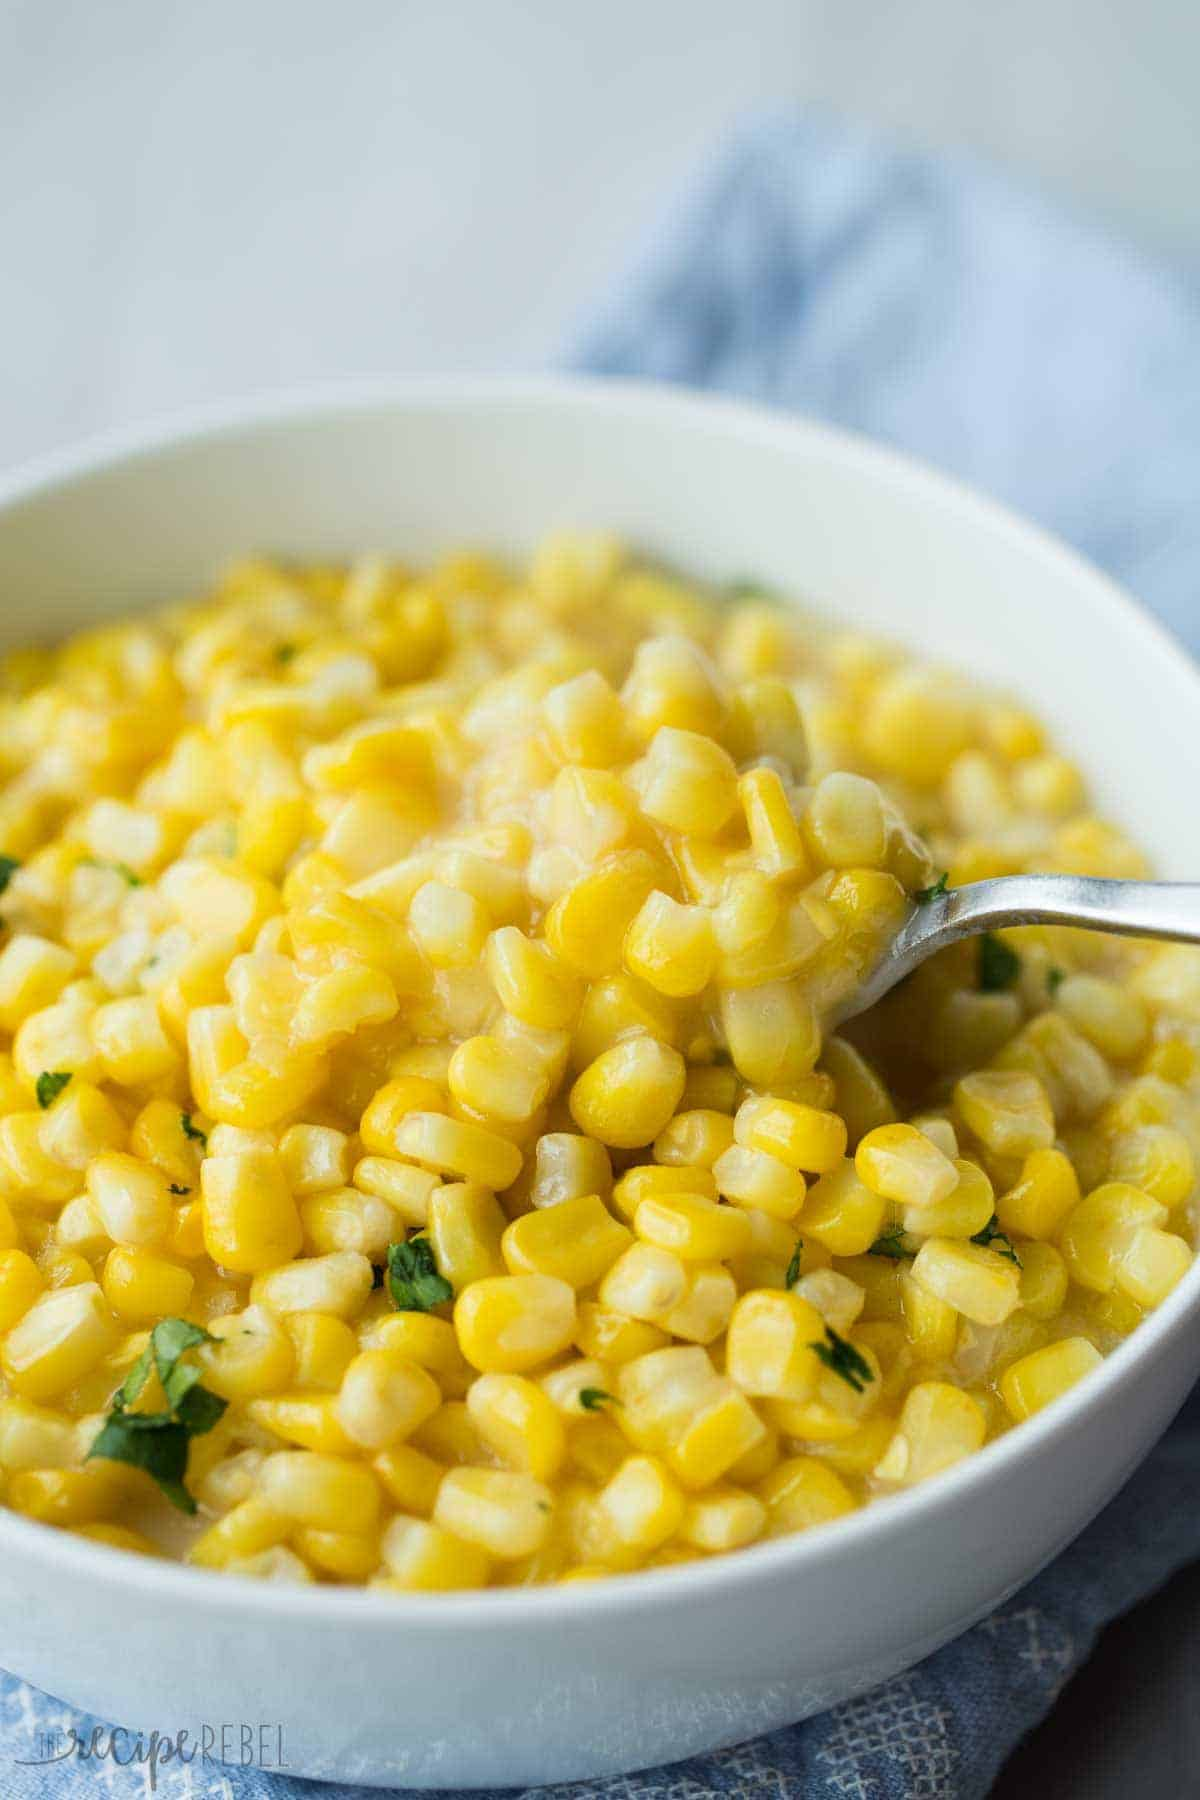 No Cream Slow Cooker Creamed Corn: a Holiday Side Dish!